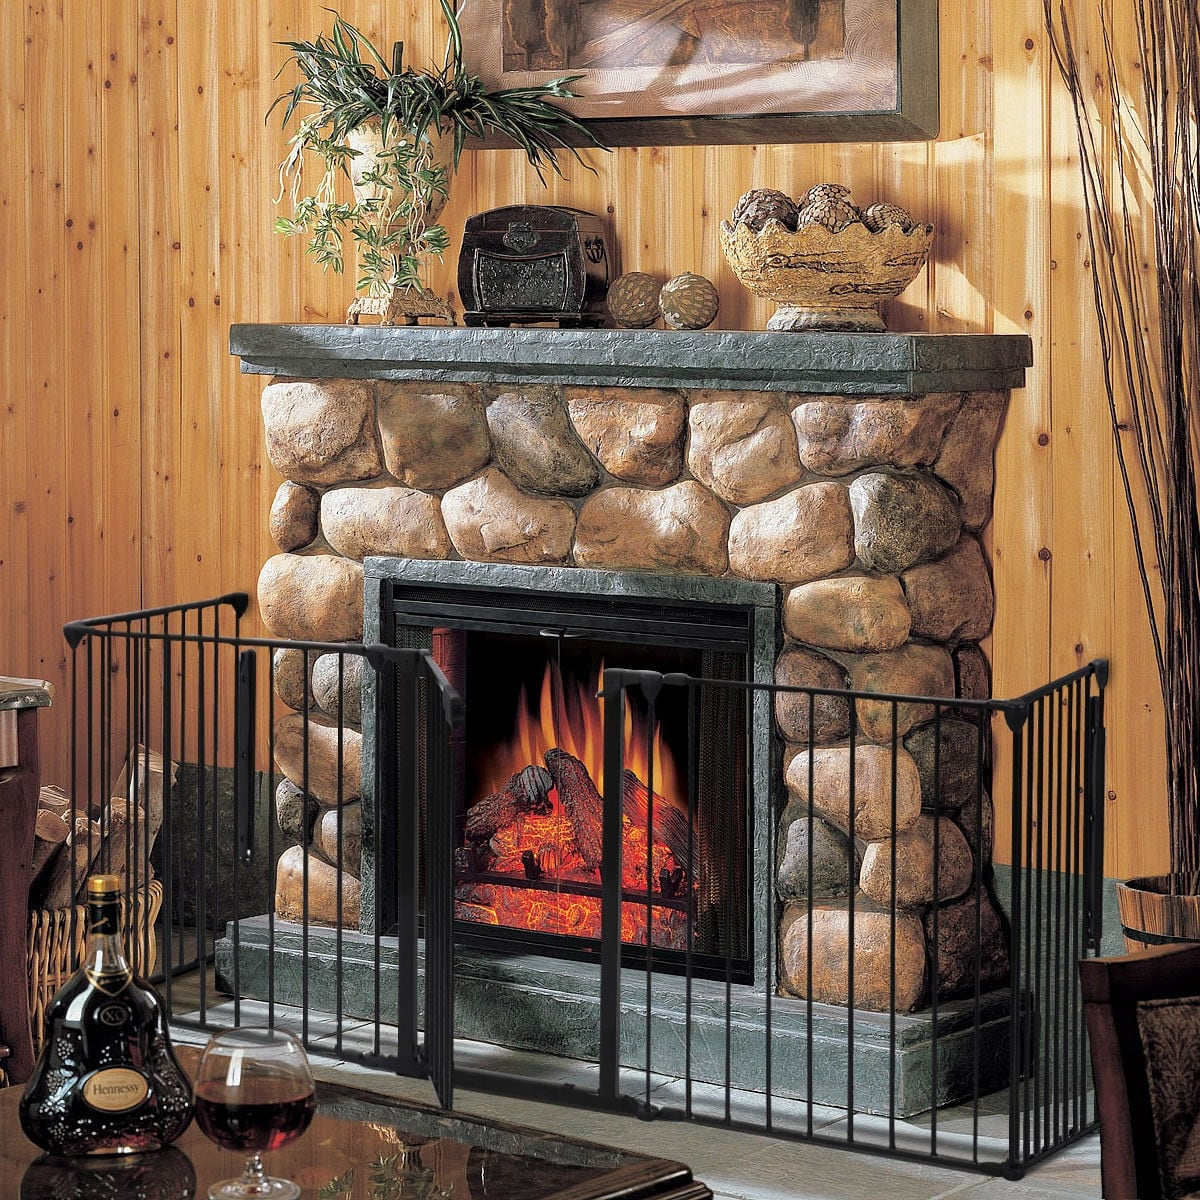 shop costway new fireplace fence baby safety fence hearth gate bbq rh overstock com fireplace baby gate canada fireplace baby gate australia